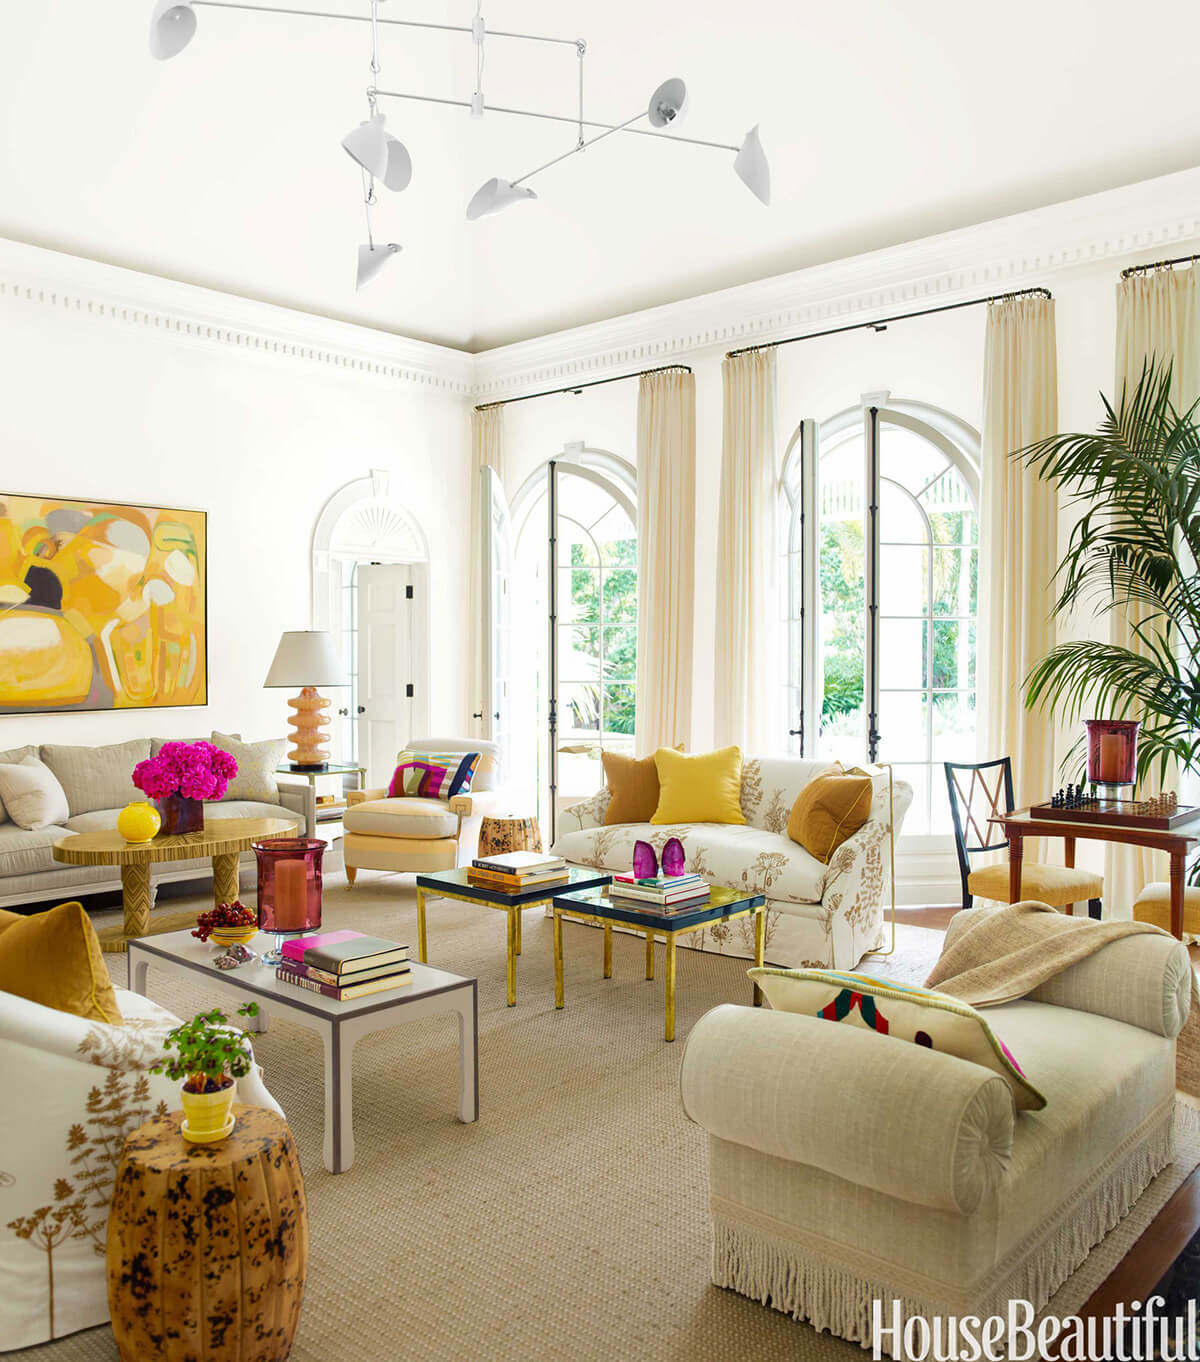 Beige Living Room with Yellow and Magenta Accents